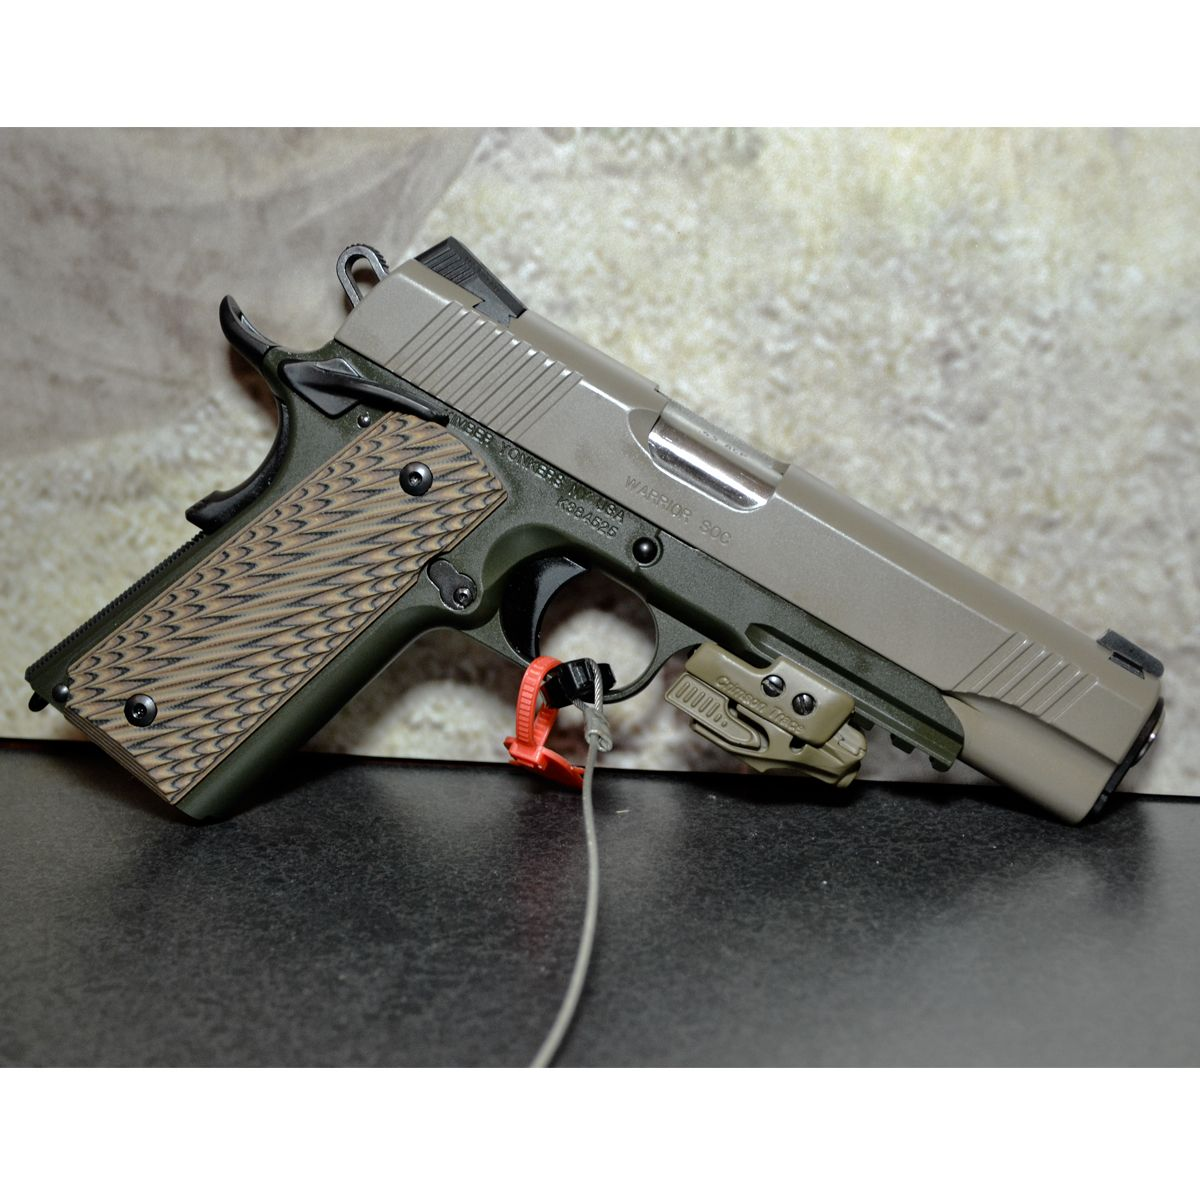 Kimber Warrior SOC .45ACP Pistol w/ Laser - 7rd - available for ...